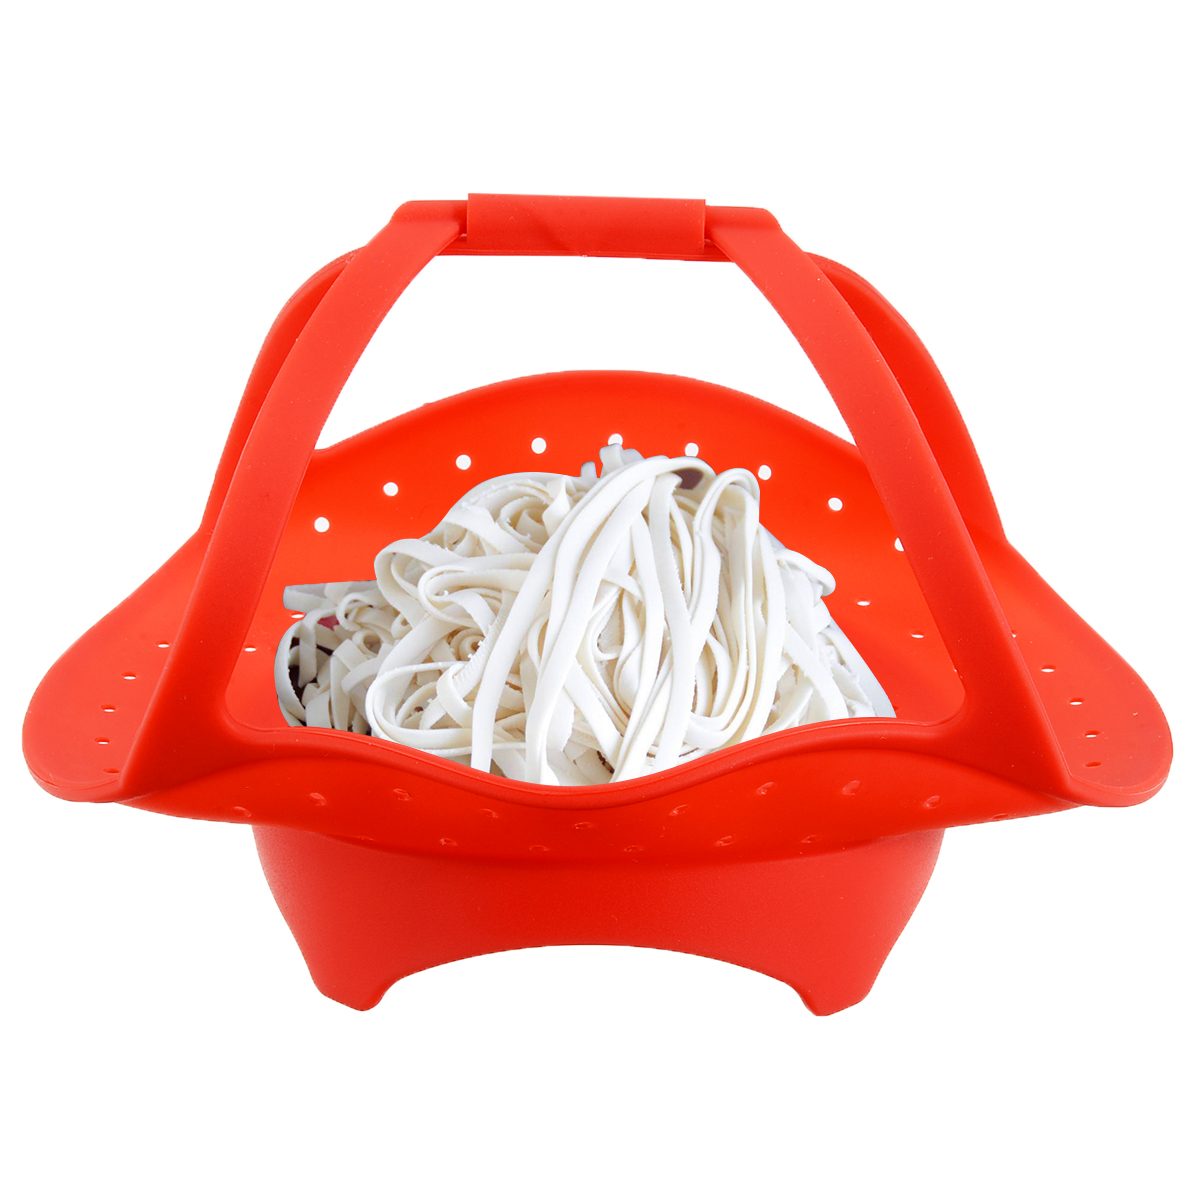 Foldable Silicone Pot Steamer Food Tool Drain Baskets Pad Microwave Ovan Steamer Kitchen Heat Resistant Handle Cookware Tool